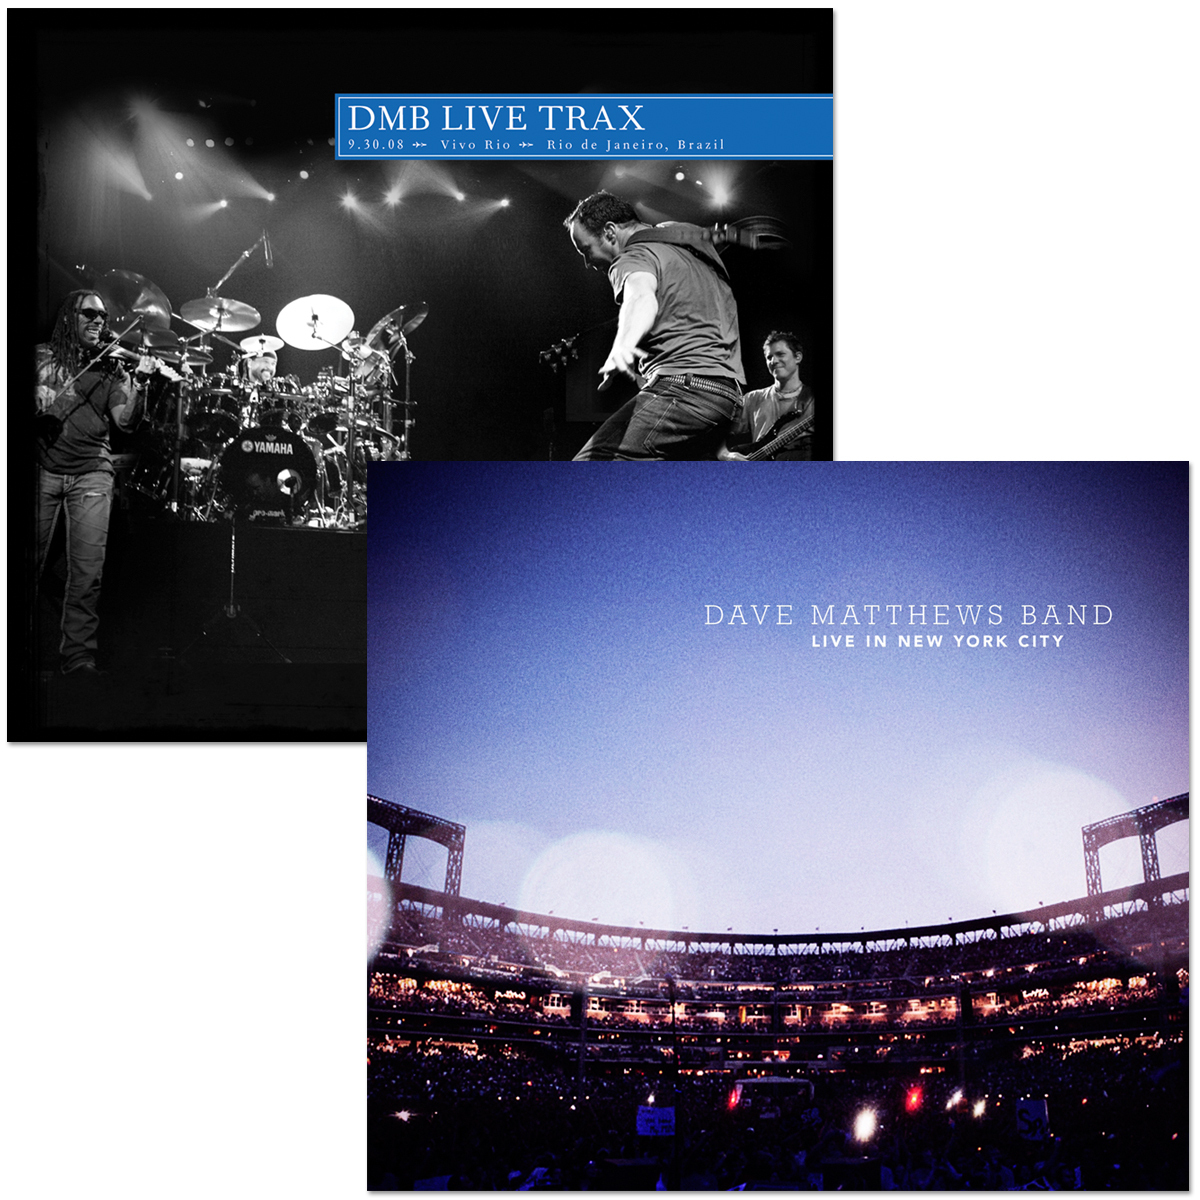 DMB Live In New York City and Live Trax Vol. 19 CDs